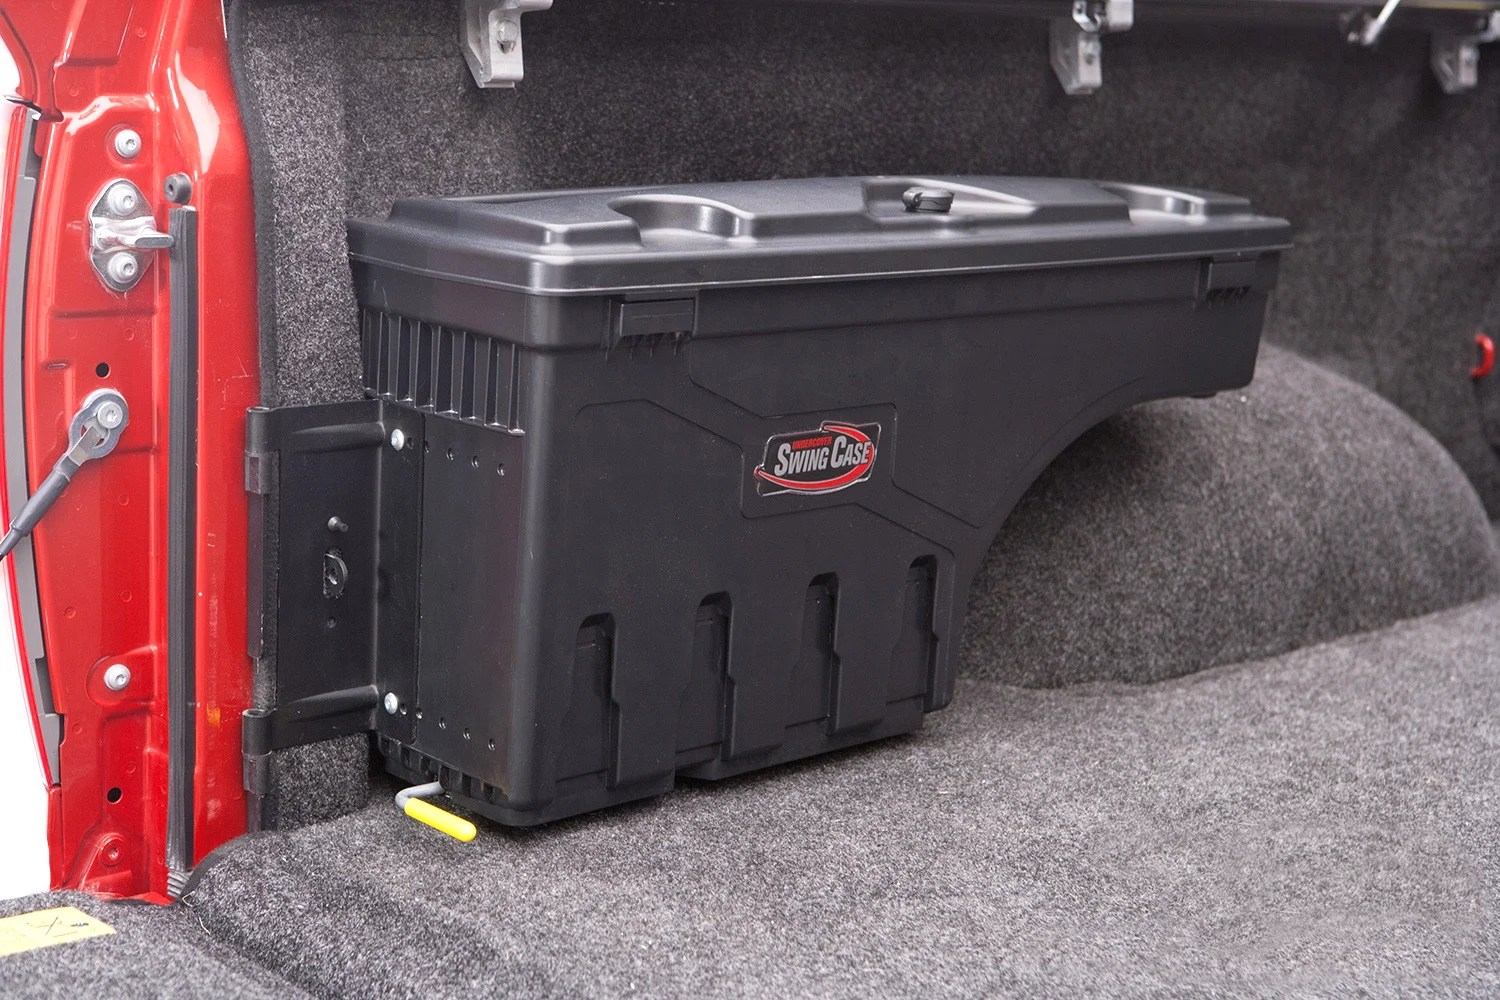 1997 2014 Ford F150 Undercover Swing Case Truck Toolbox